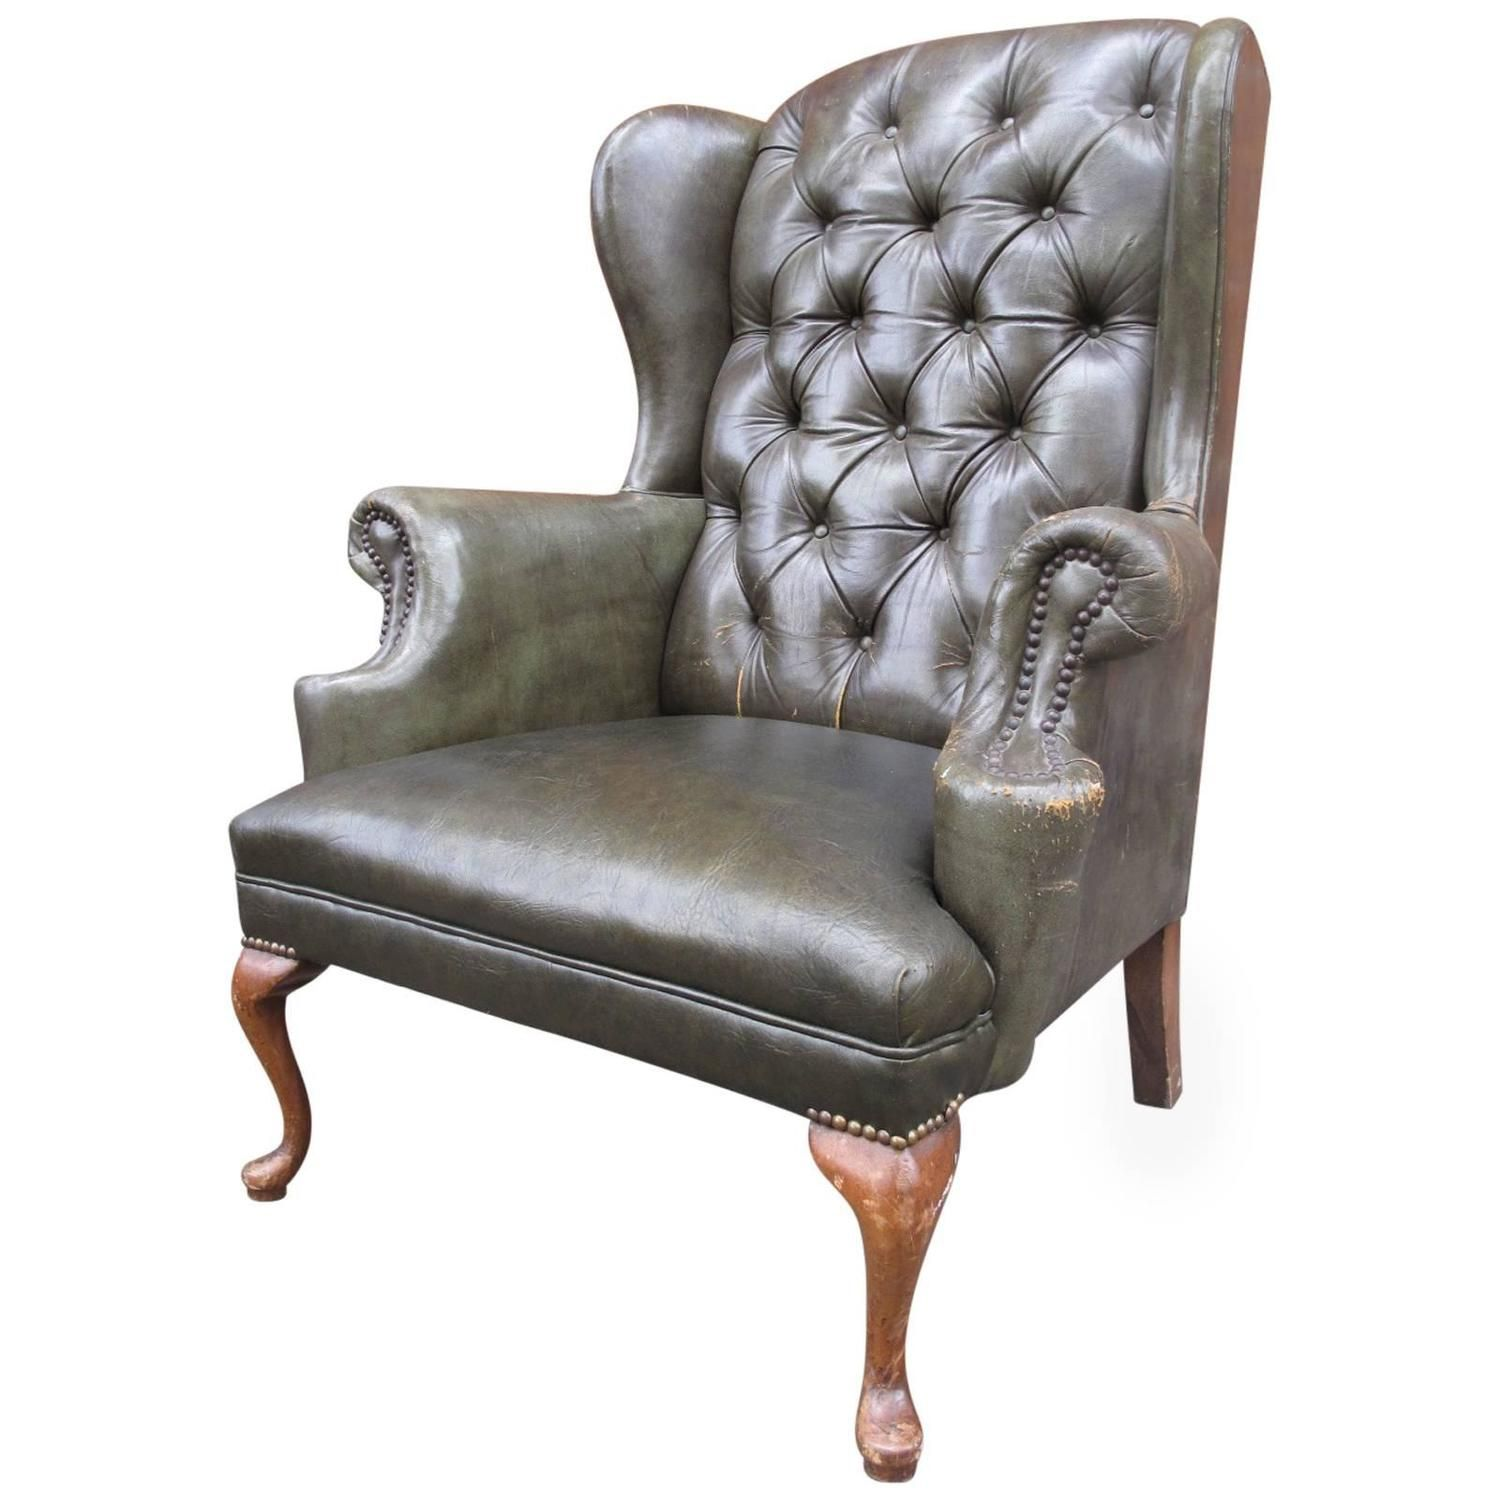 2019 Queen Anne Leather Chairs Best Bedroom Furniture Check More At Http